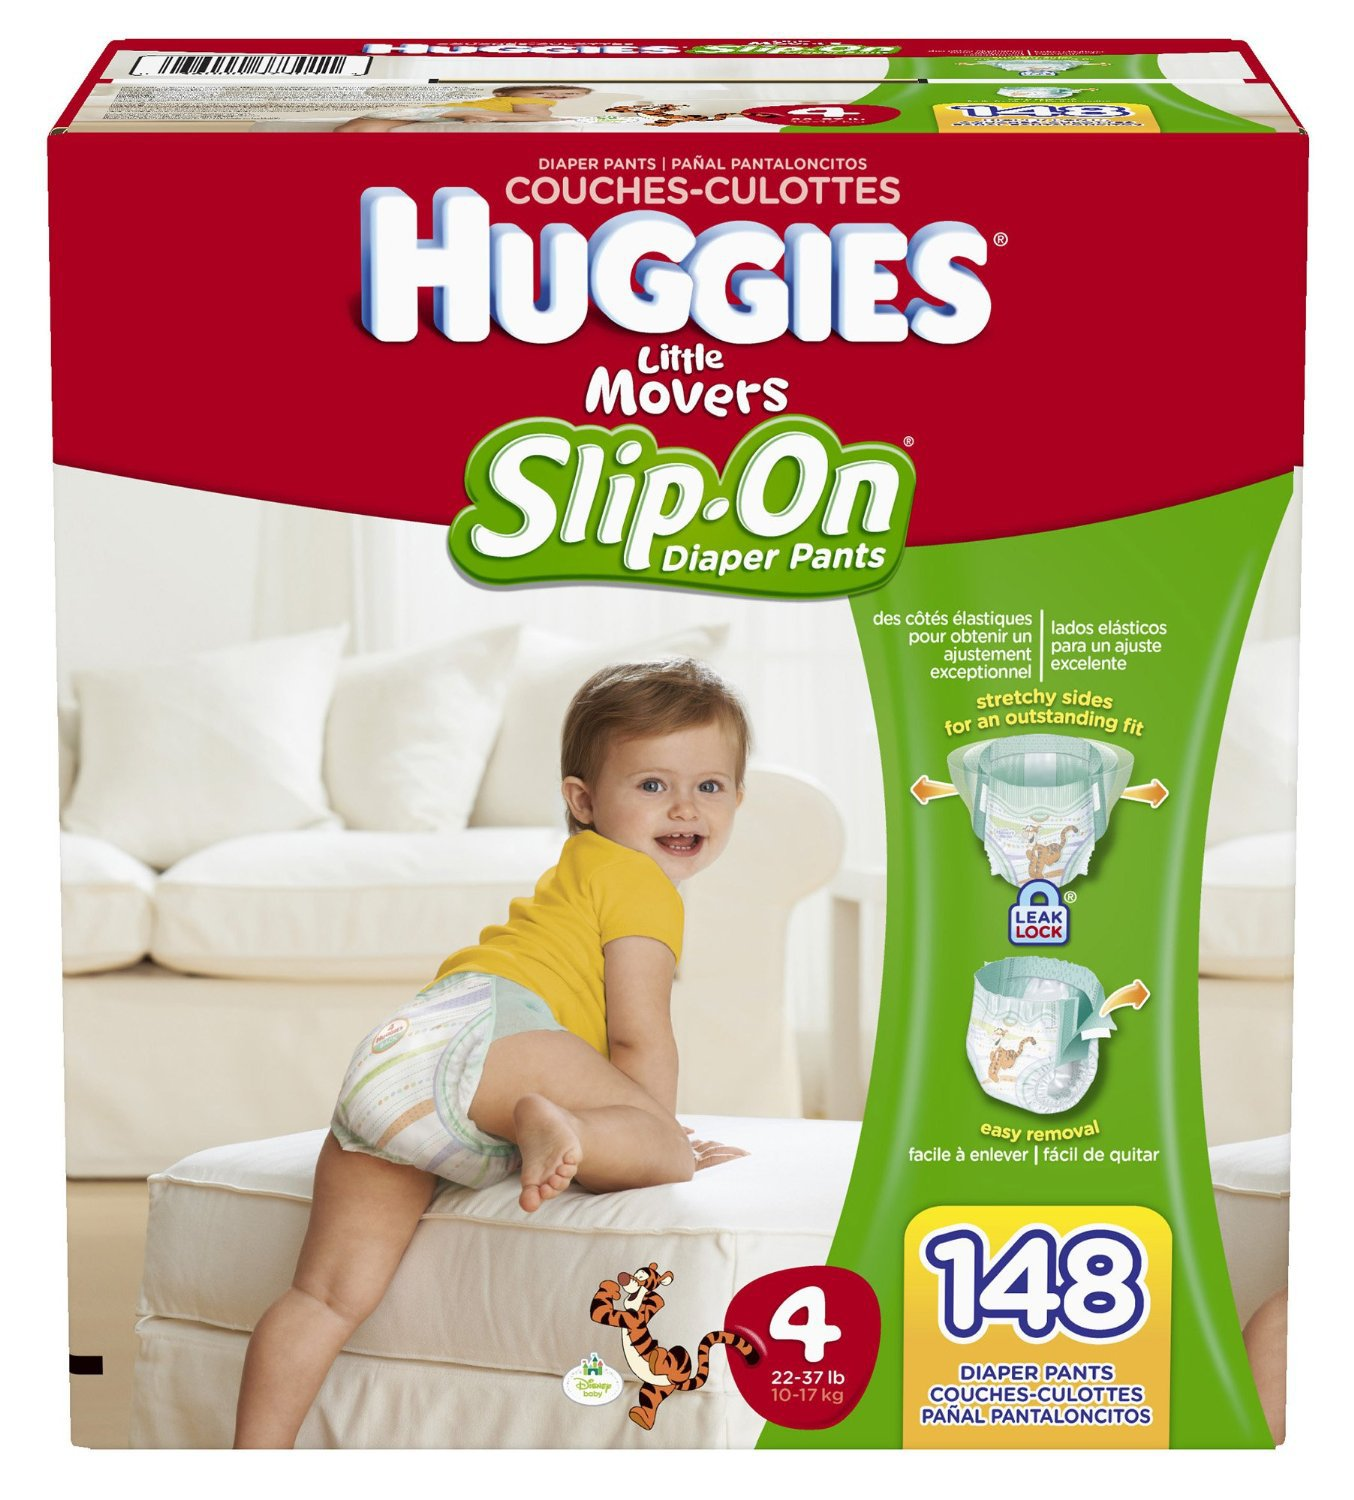 Huggies Little Movers Slip-On Diaper Pants, Size 4 - 148 Count ...